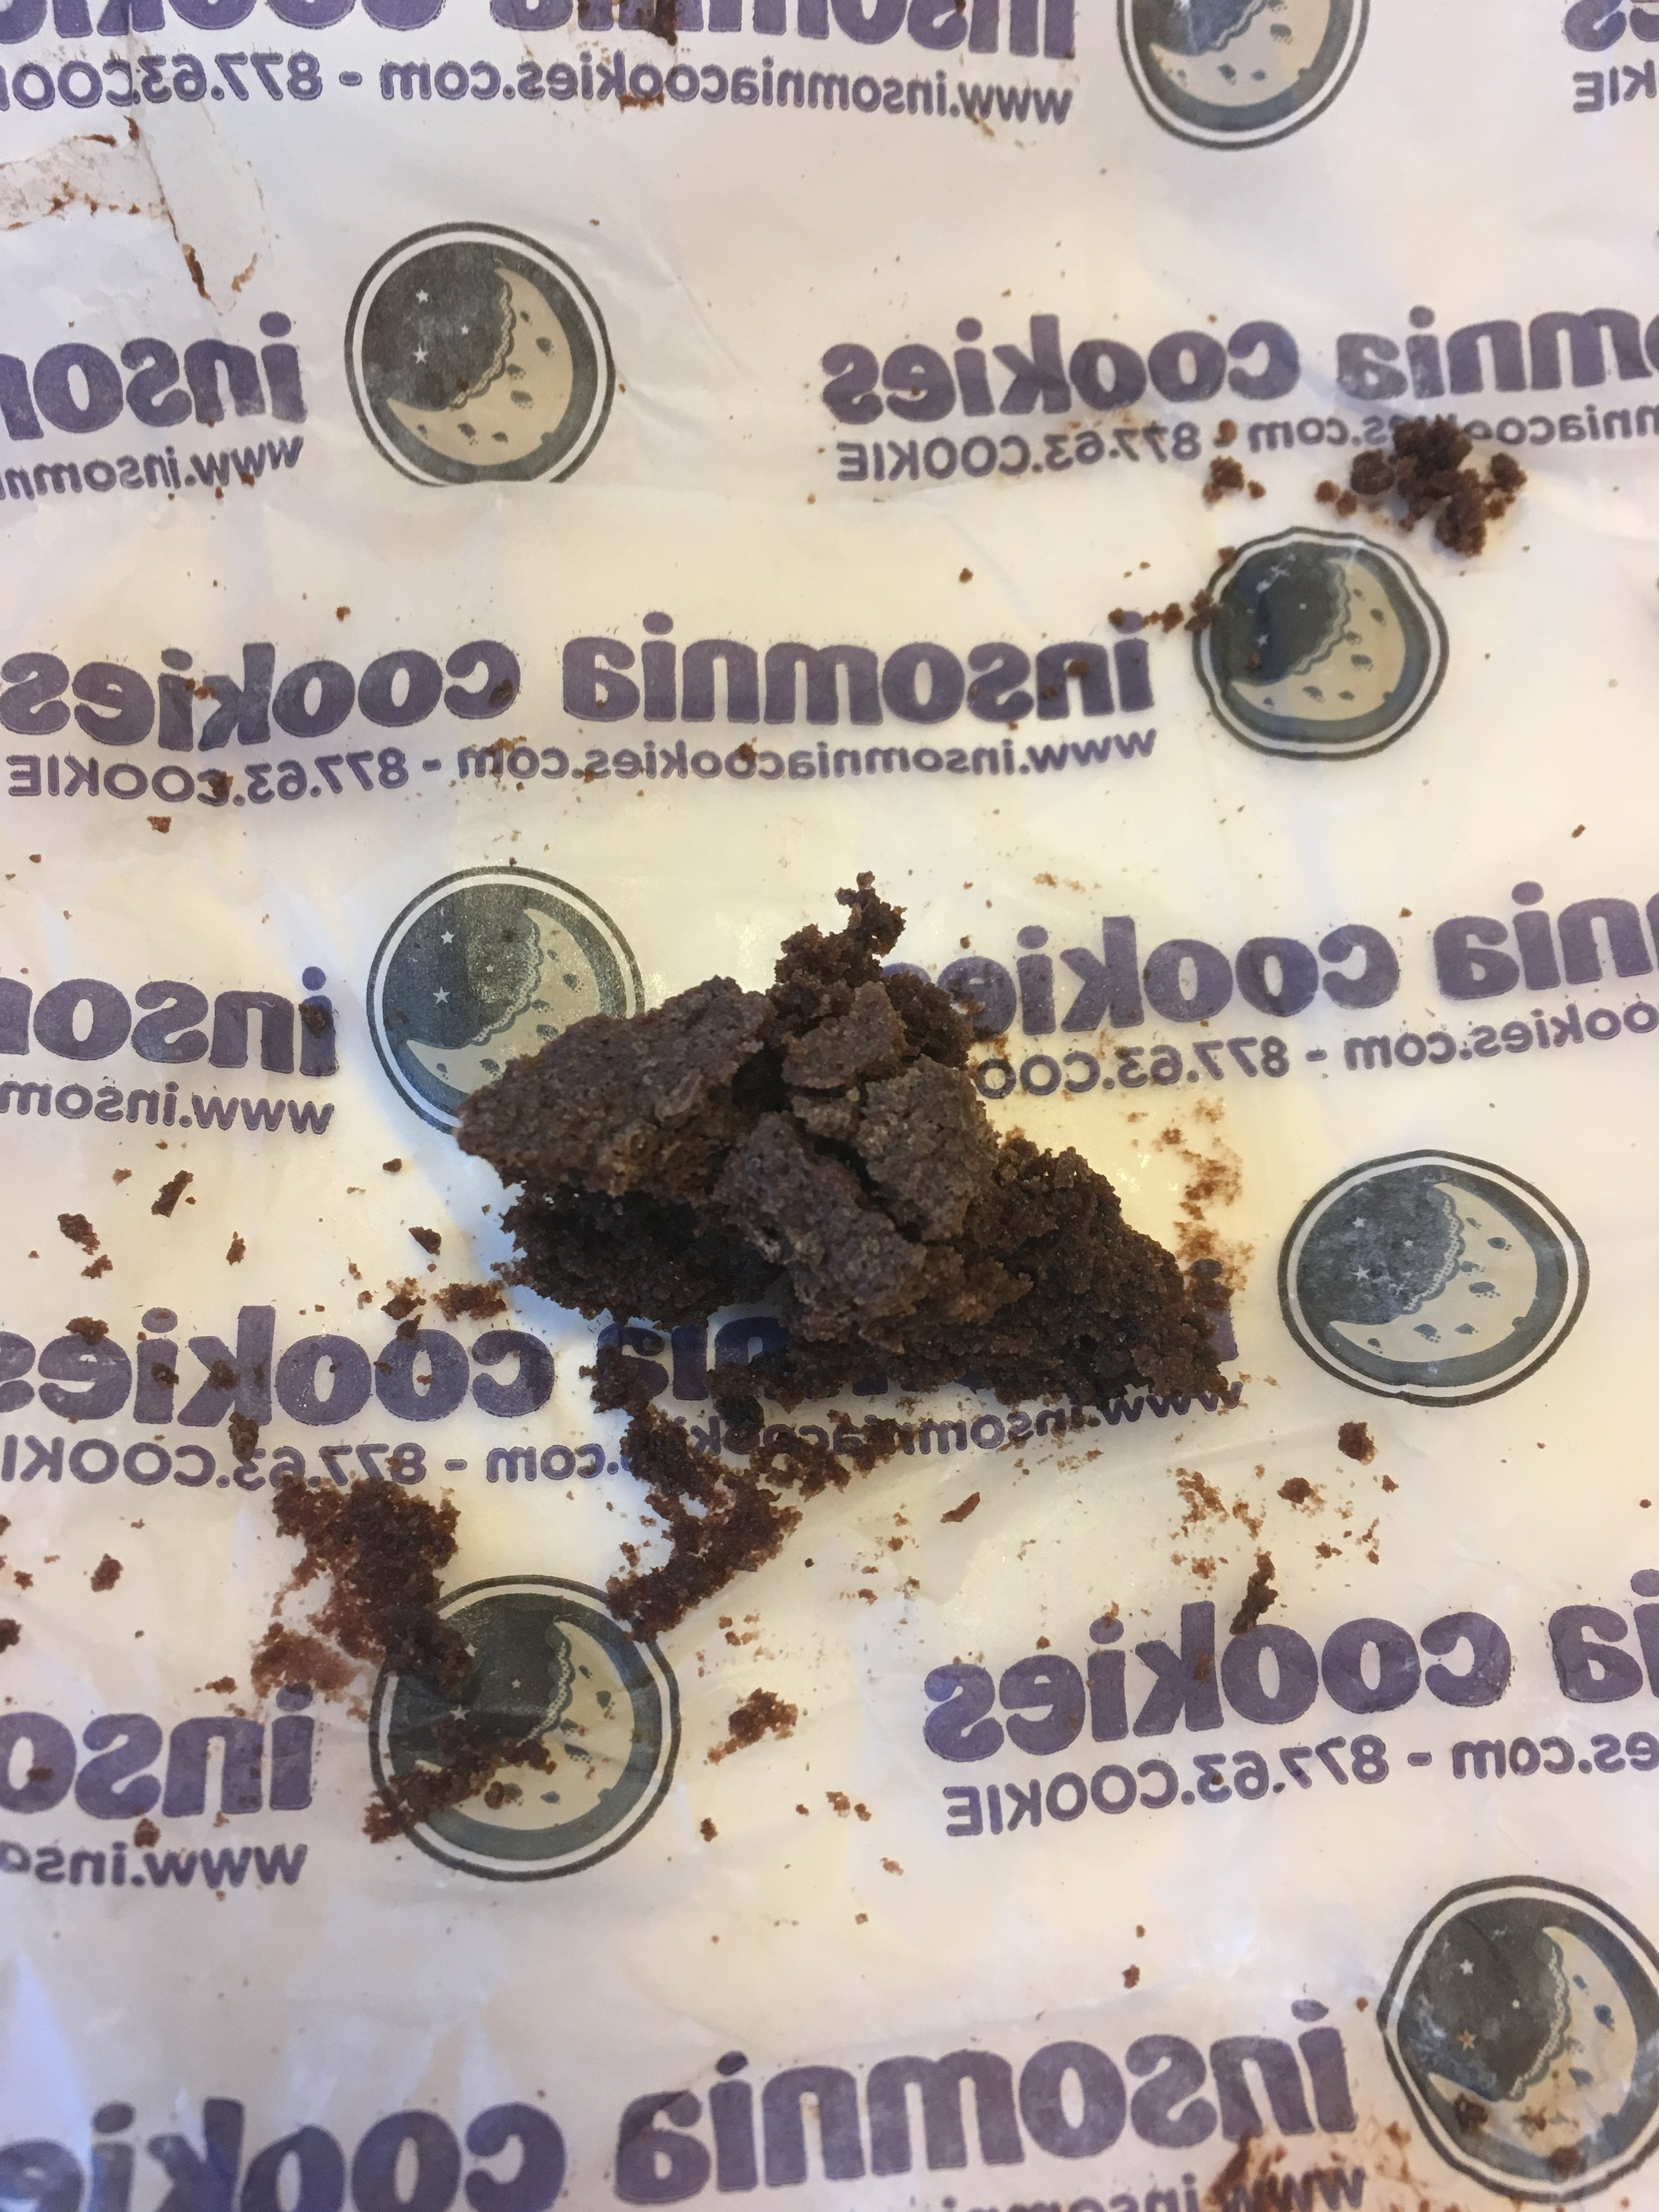 Insomnia Chocolate Chip Brownies at the end. Image: Frankie Jay